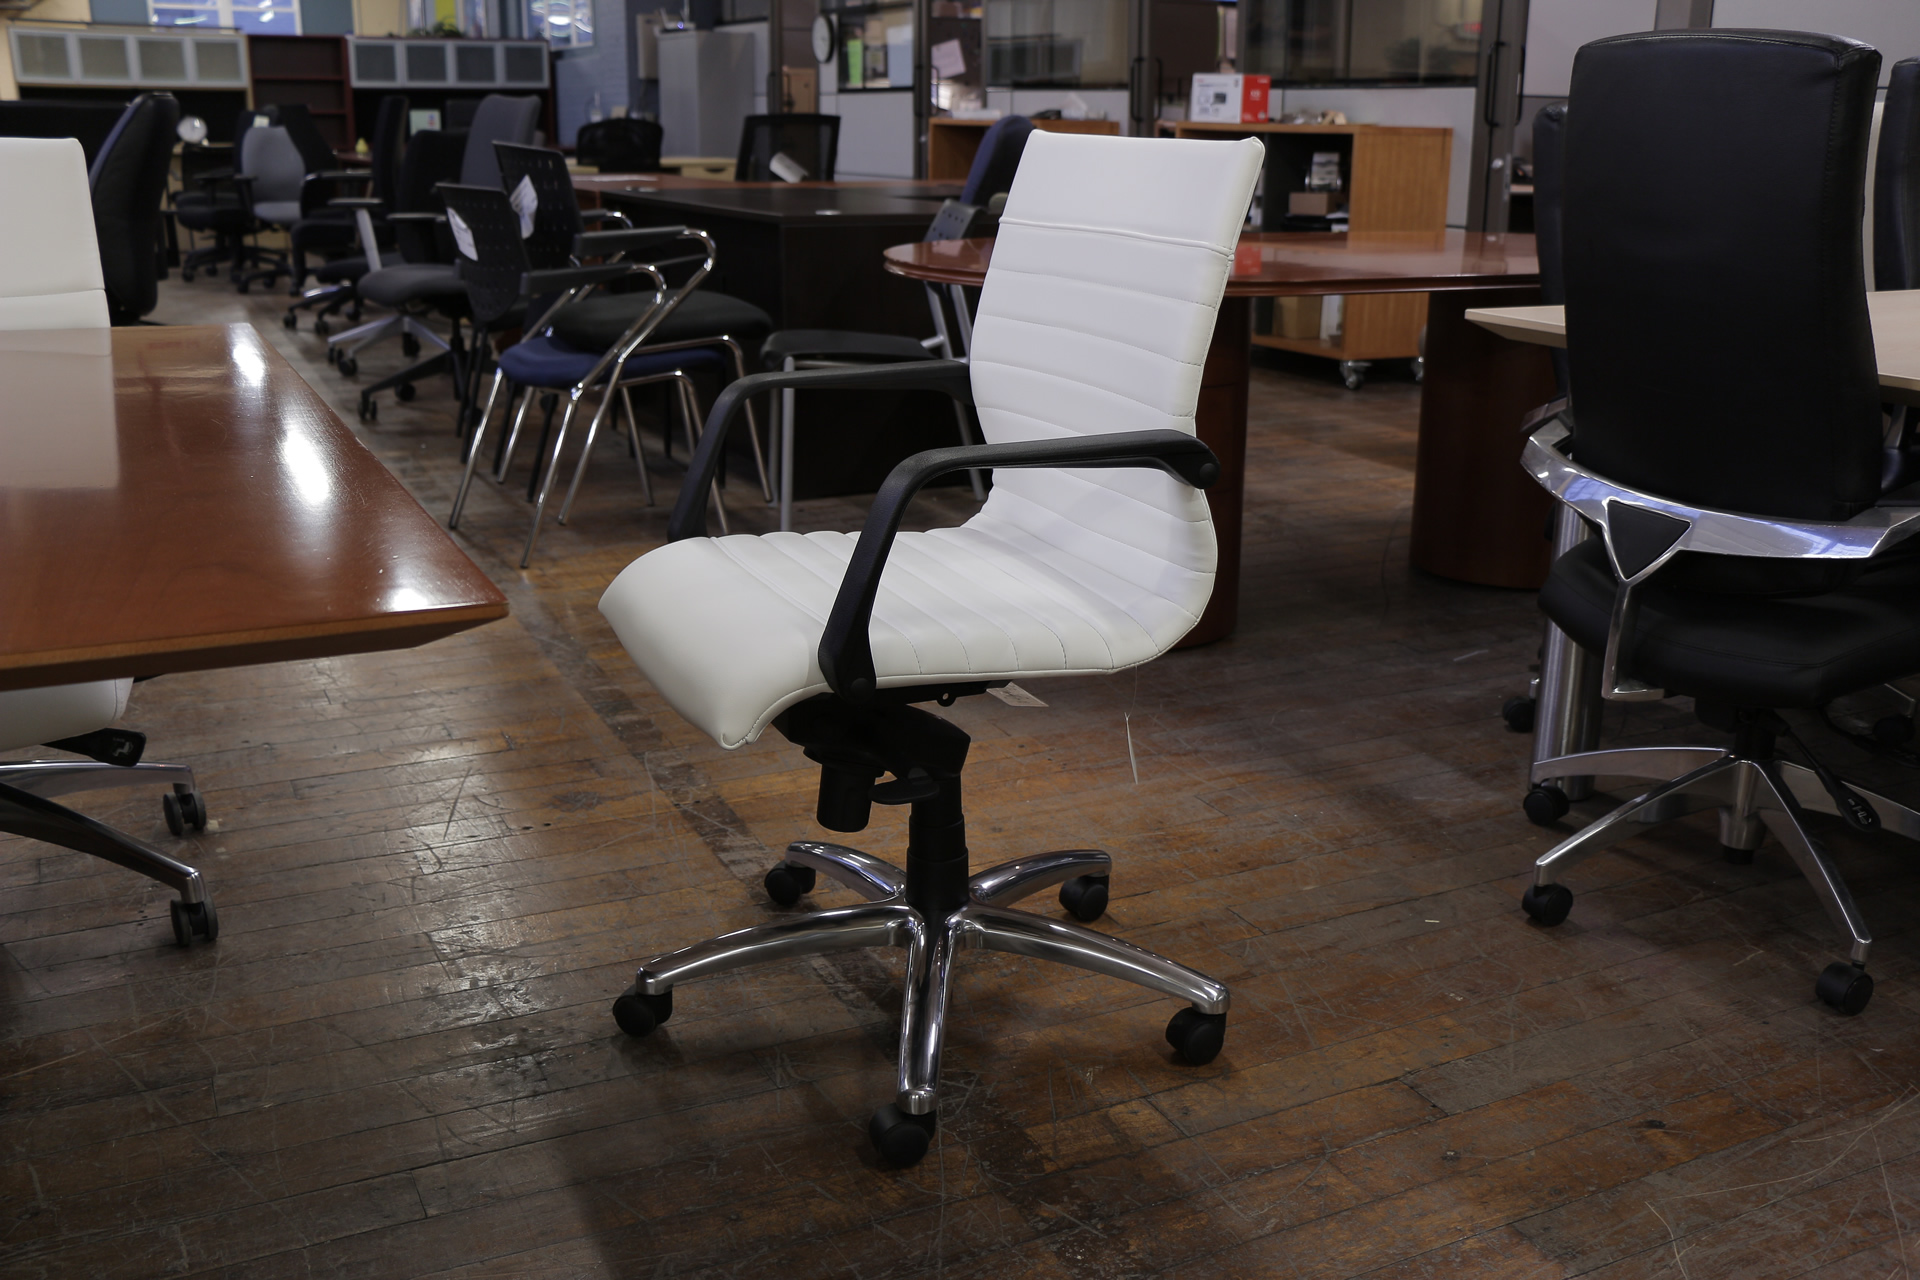 peartreeofficefurniture_peartreeofficefurniture_peartreeofficefurniture_img_9575.jpg